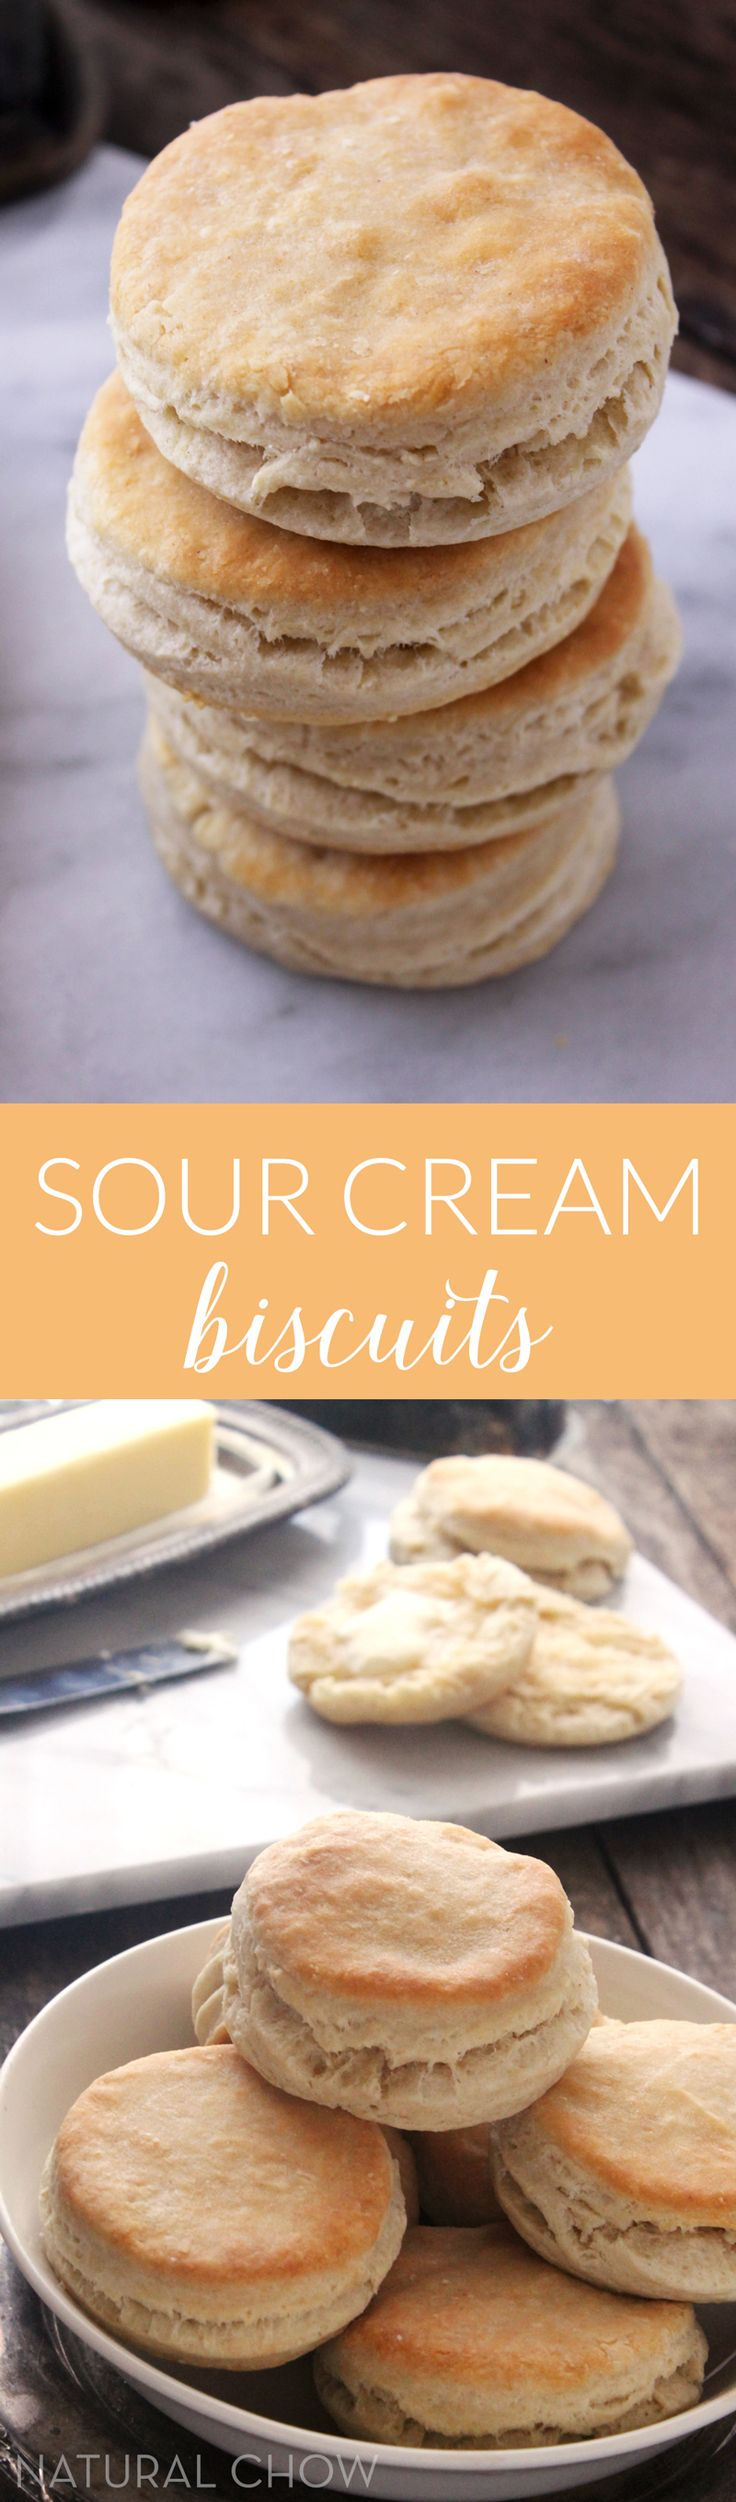 17 Best ideas about Homemade Biscuits From Scratch on Pinterest ...